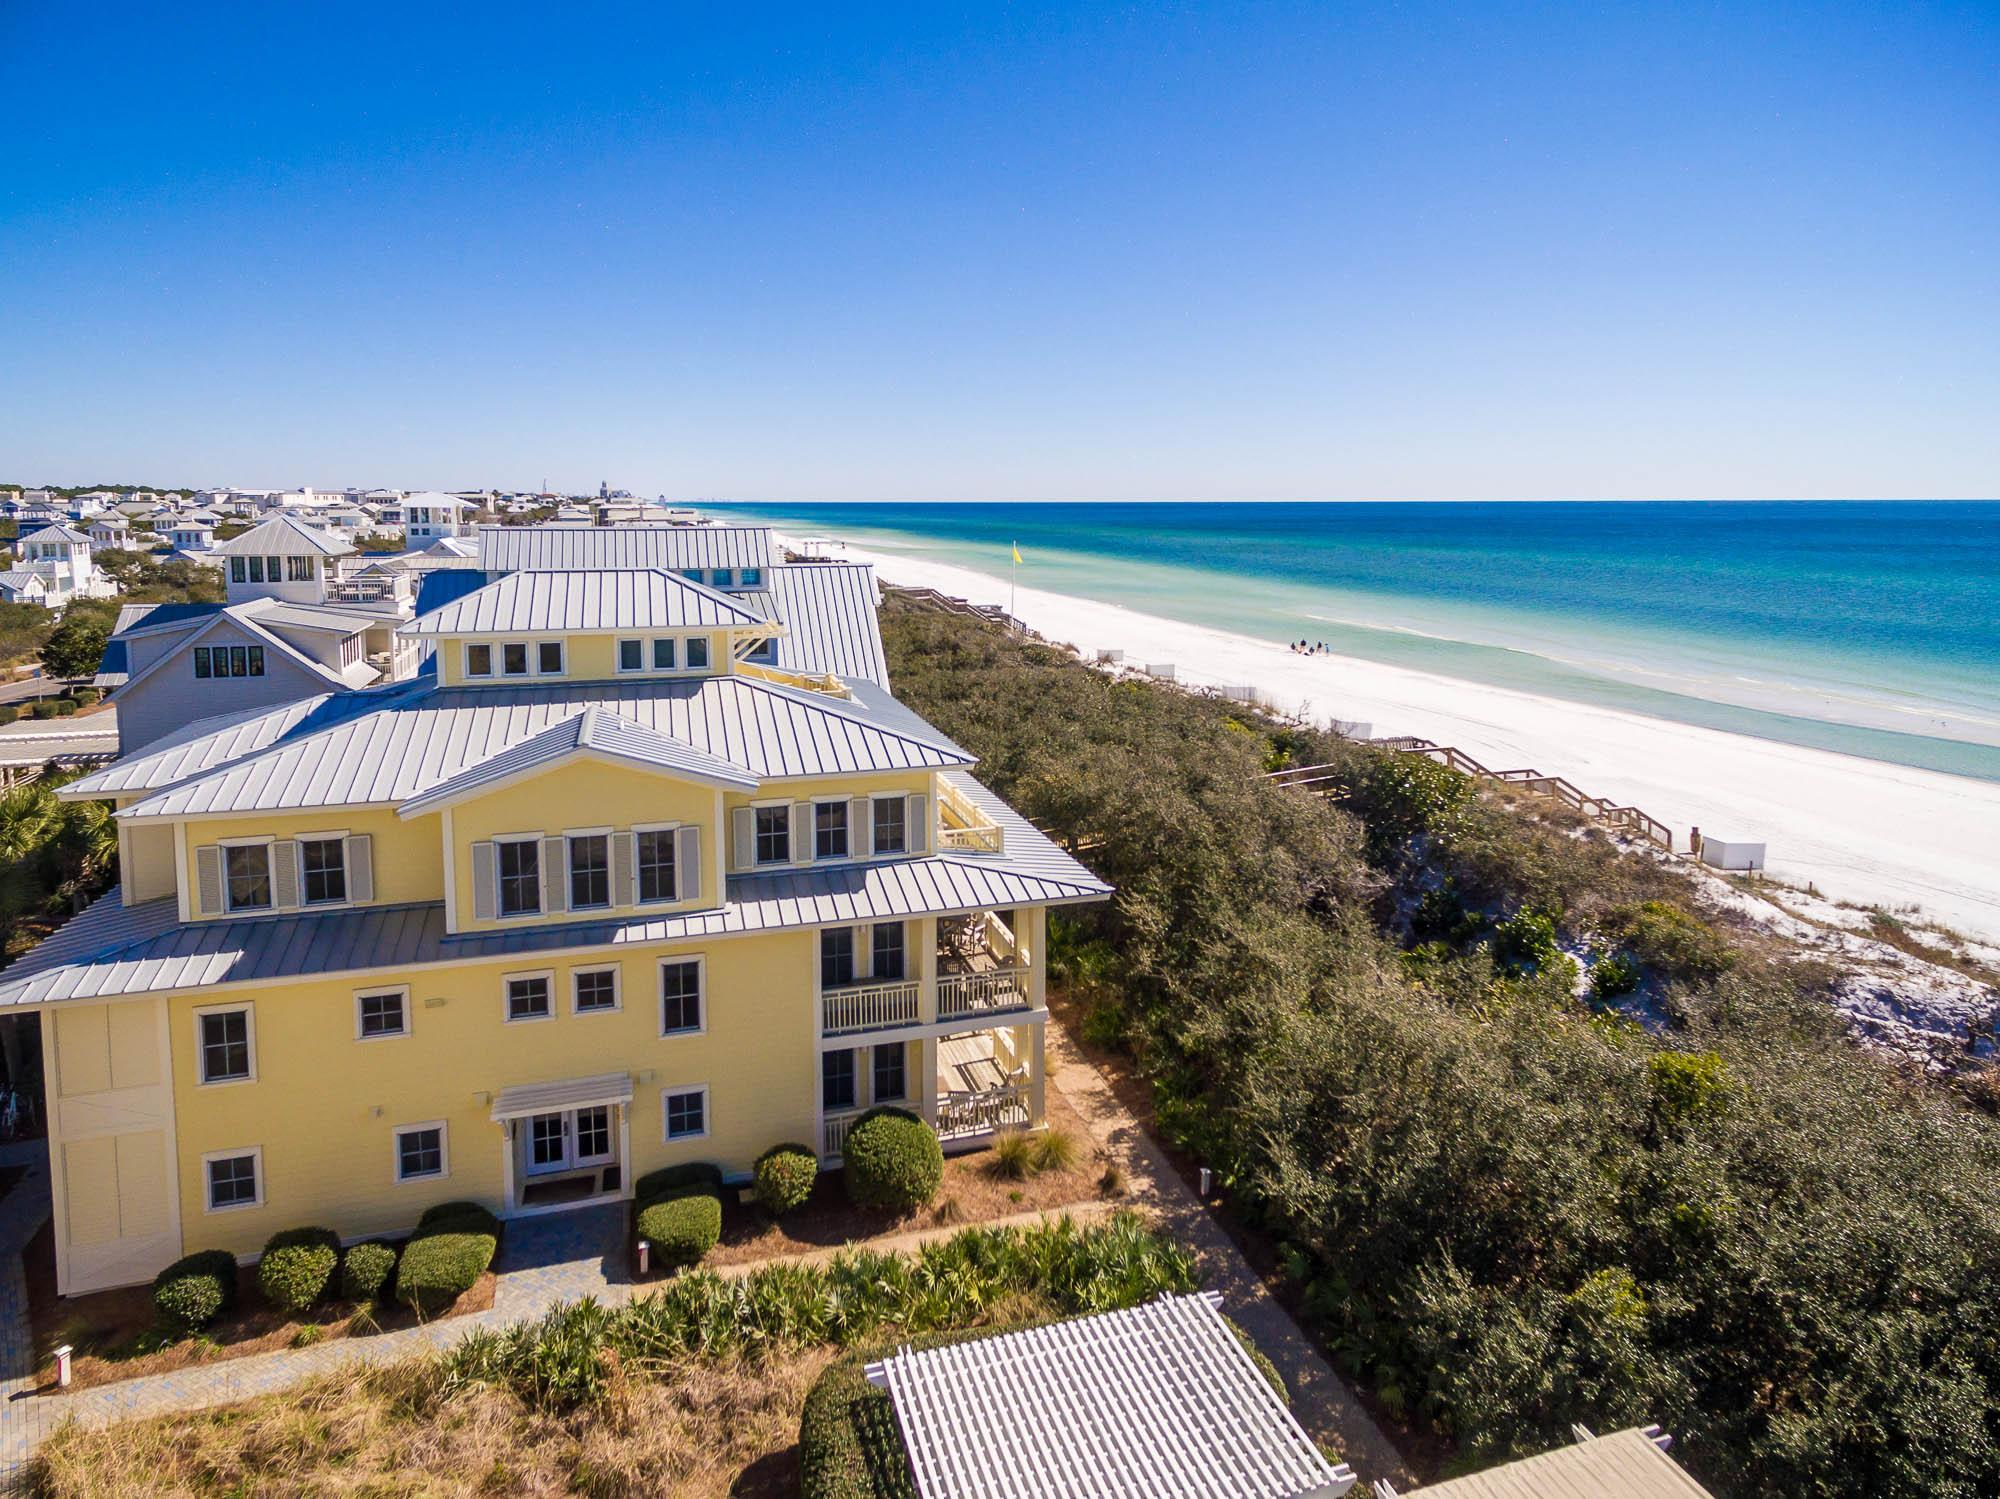 This beachside town home is your perfect getaway! Located Gulf Front within the Beach District of Watercolor, this two story, three bedroom, 3.5 bathroom unit is the perfect home away from home and situated in one of the best locations on 30A. The unit has over $75,000 of rental income already on the books for 2019 and we are early in the Season!  Convenience is all around you at Beachside #20 as it is ideally located between the beach access, private Beachside Pool and walking distance to everything located in Watercolor and Seaside!! This home boasts two king master suites, one bedroom with twin bunks/trundle, single bed with trundle and a pull out bed located in the sleeper sofa. Enjoy early morning cup of coffee or night cap on the balcony where you can watch the amazing Sunsets! The coastal decorated living area is located on the upper level, with ample plush seating for everyone in stunning professionally designed interiors. Enjoy cooking in the fully equipped kitchen and sitting around the large dining table or eating breakfast at the kitchen bar while enjoying all the views. Access to the Private Beachside Pool is located next to the unit, directly across the side entrance, also enjoy walking to Seaside! This Beachside Unit not only is within the heart of Watercolor, walking distance to everything it also boarders Seaside, you'll receive the best of both worlds!